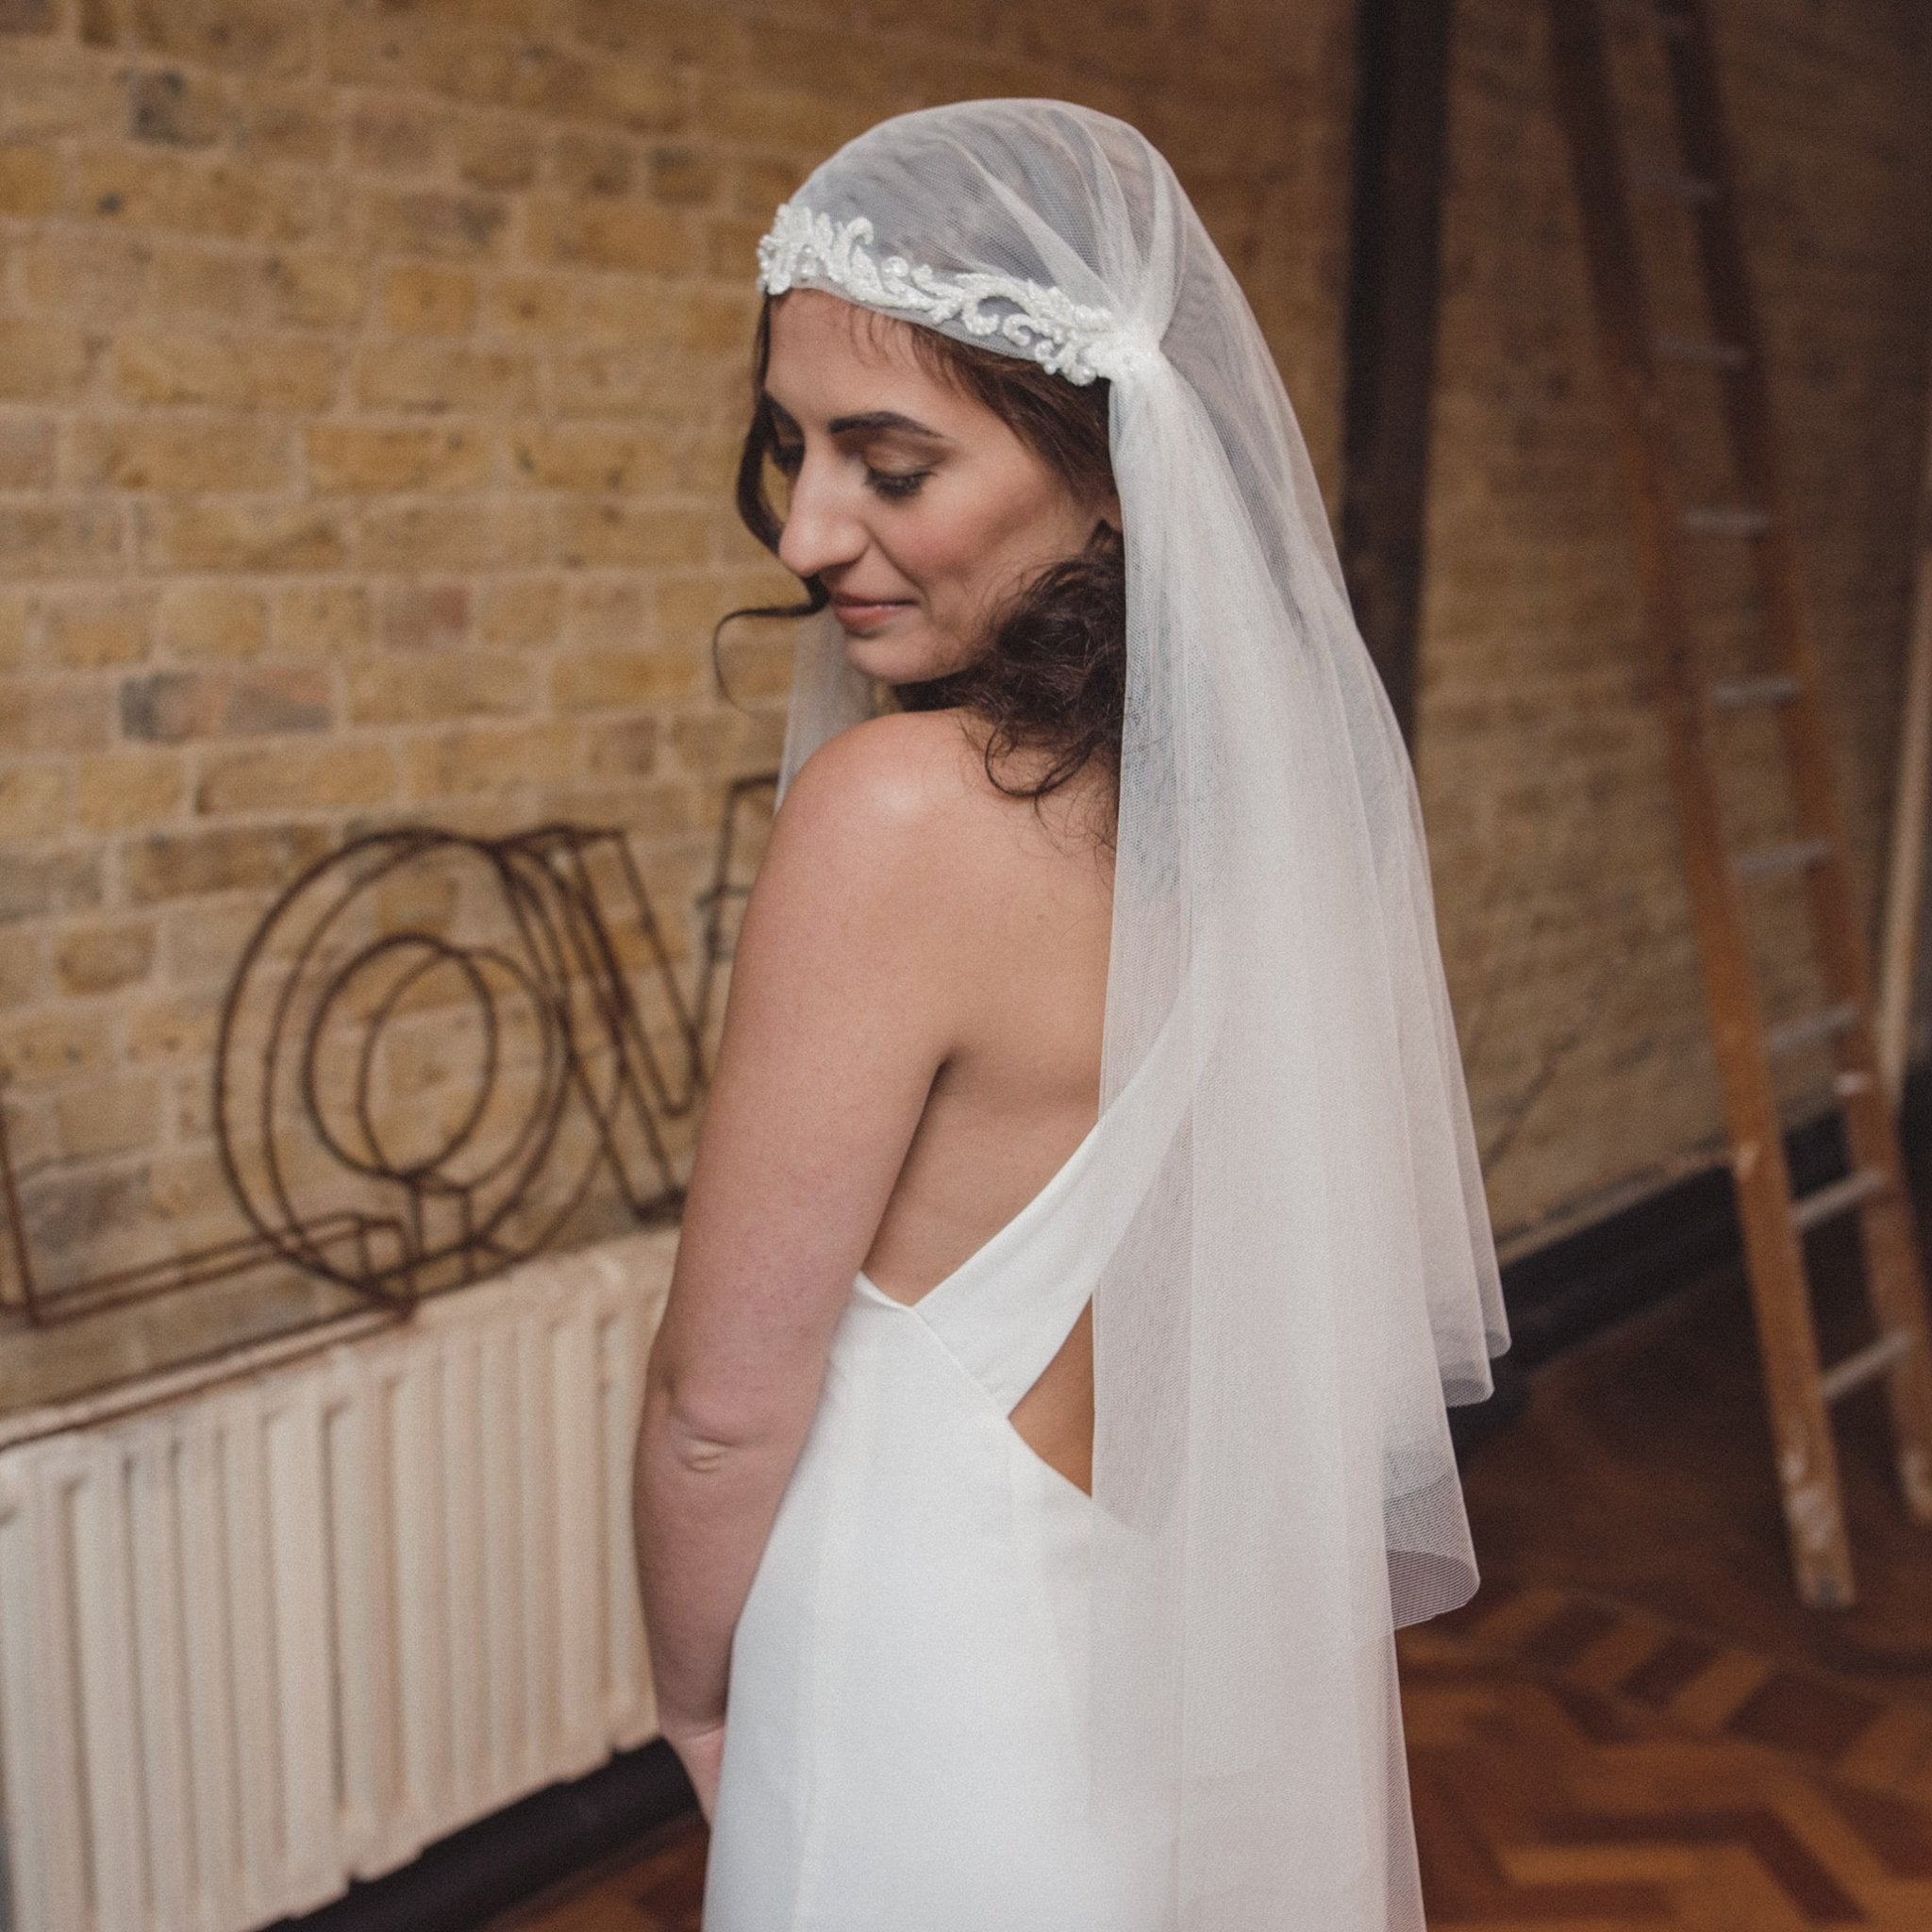 Beautiful handmade Juliet cap wedding veil by Blossom and Bluebird